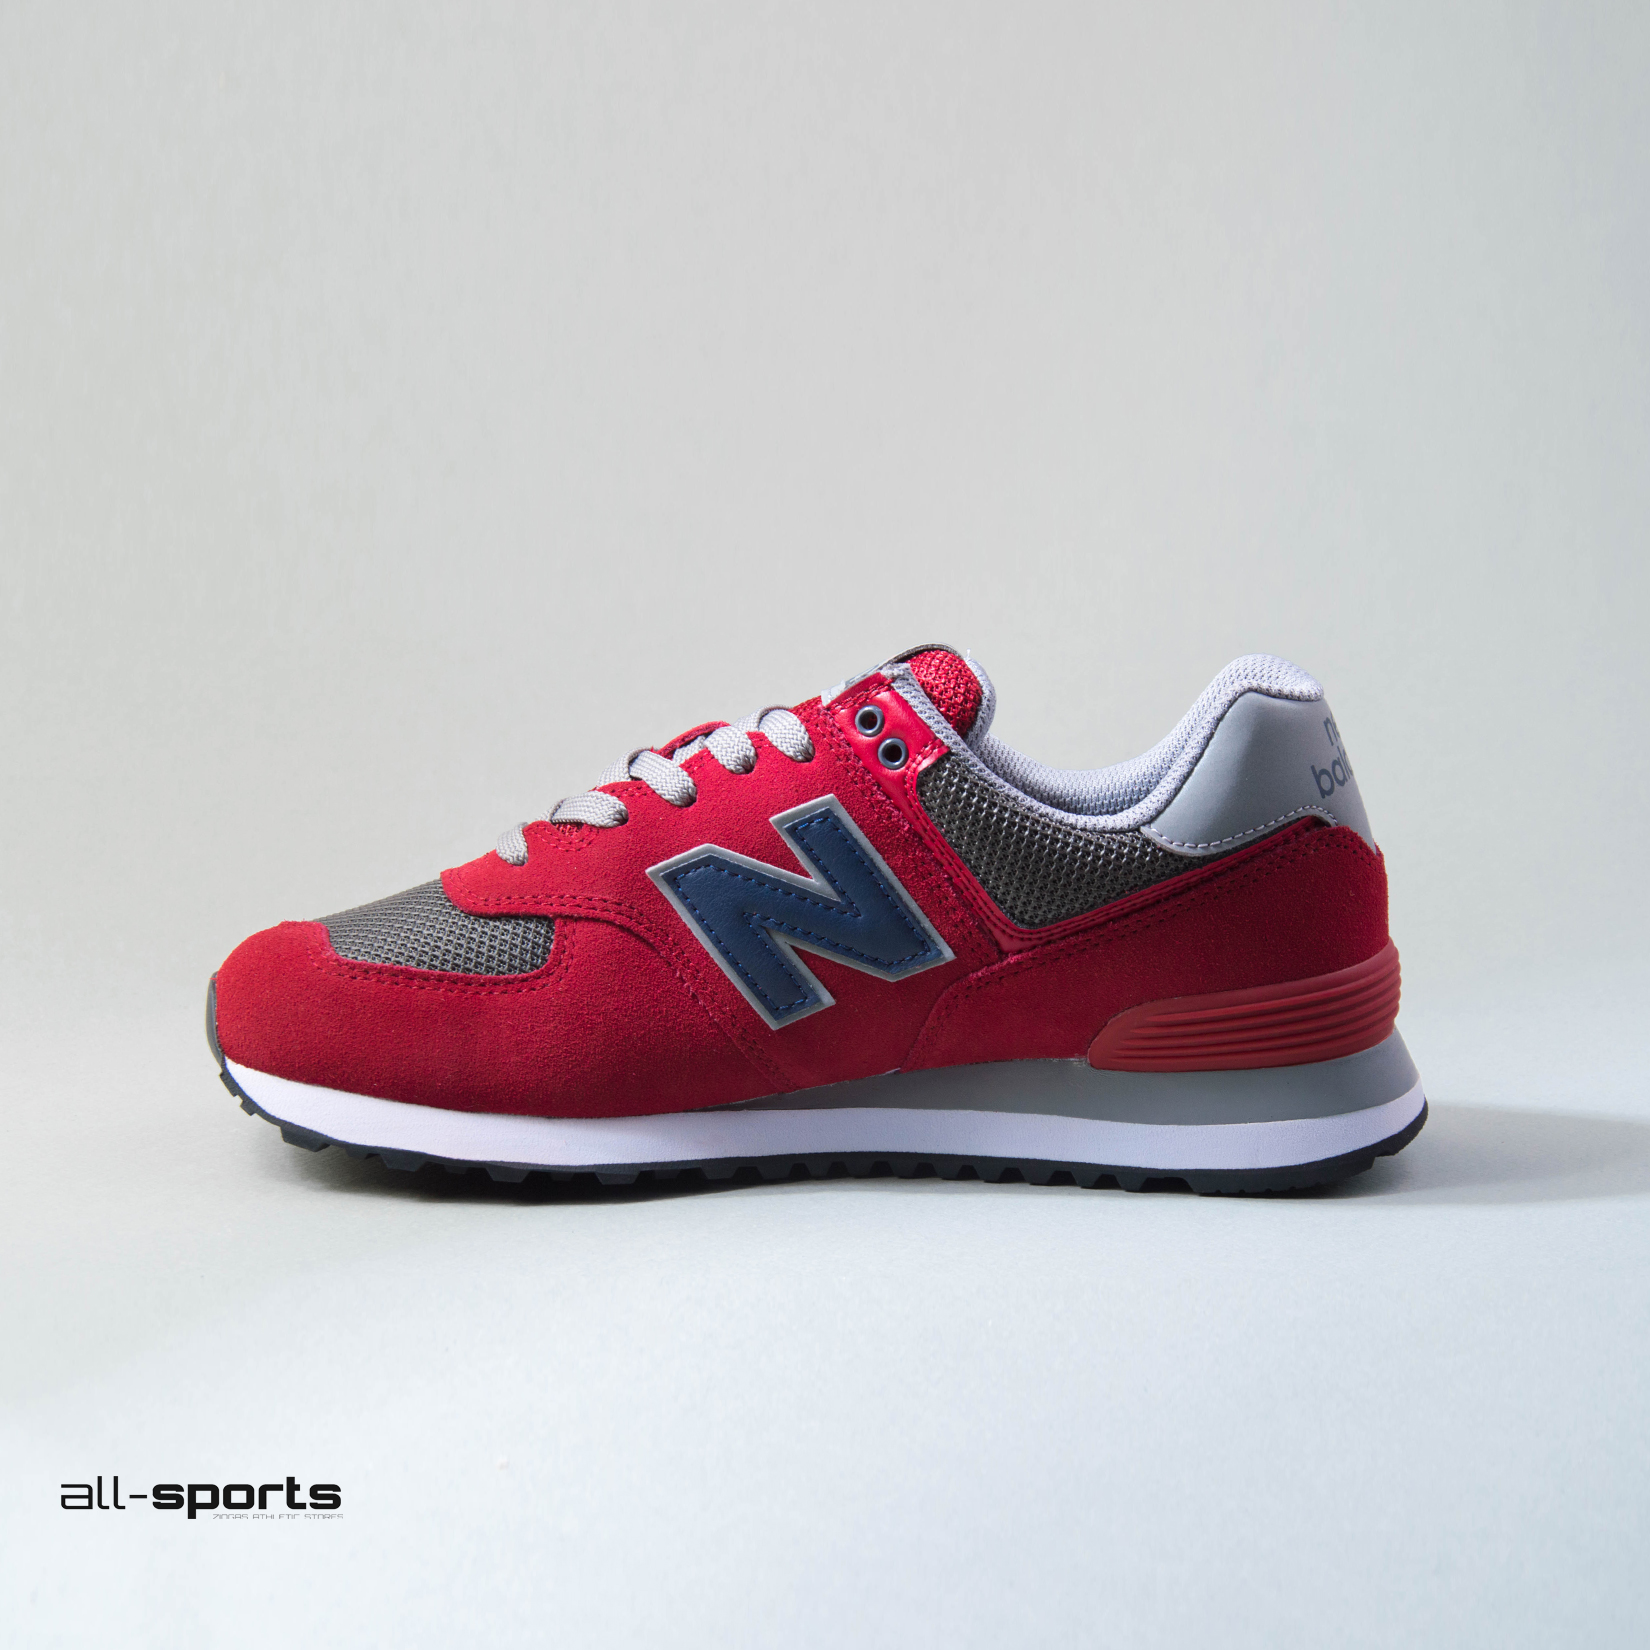 official photos c0137 1d321 Men's Shoes New Balance 574 Red / Grey   All-Sports.gr